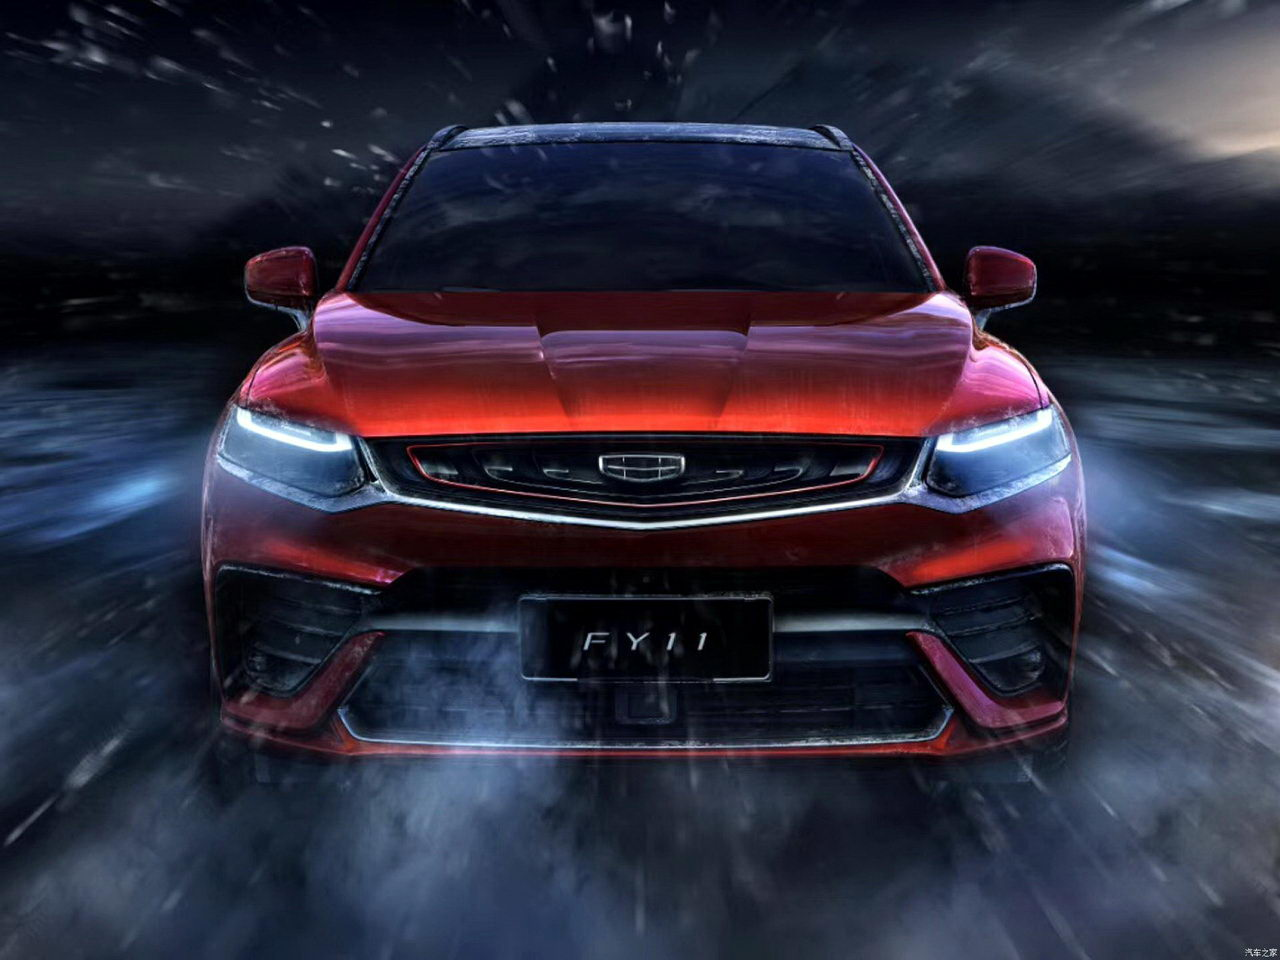 Geely FY11